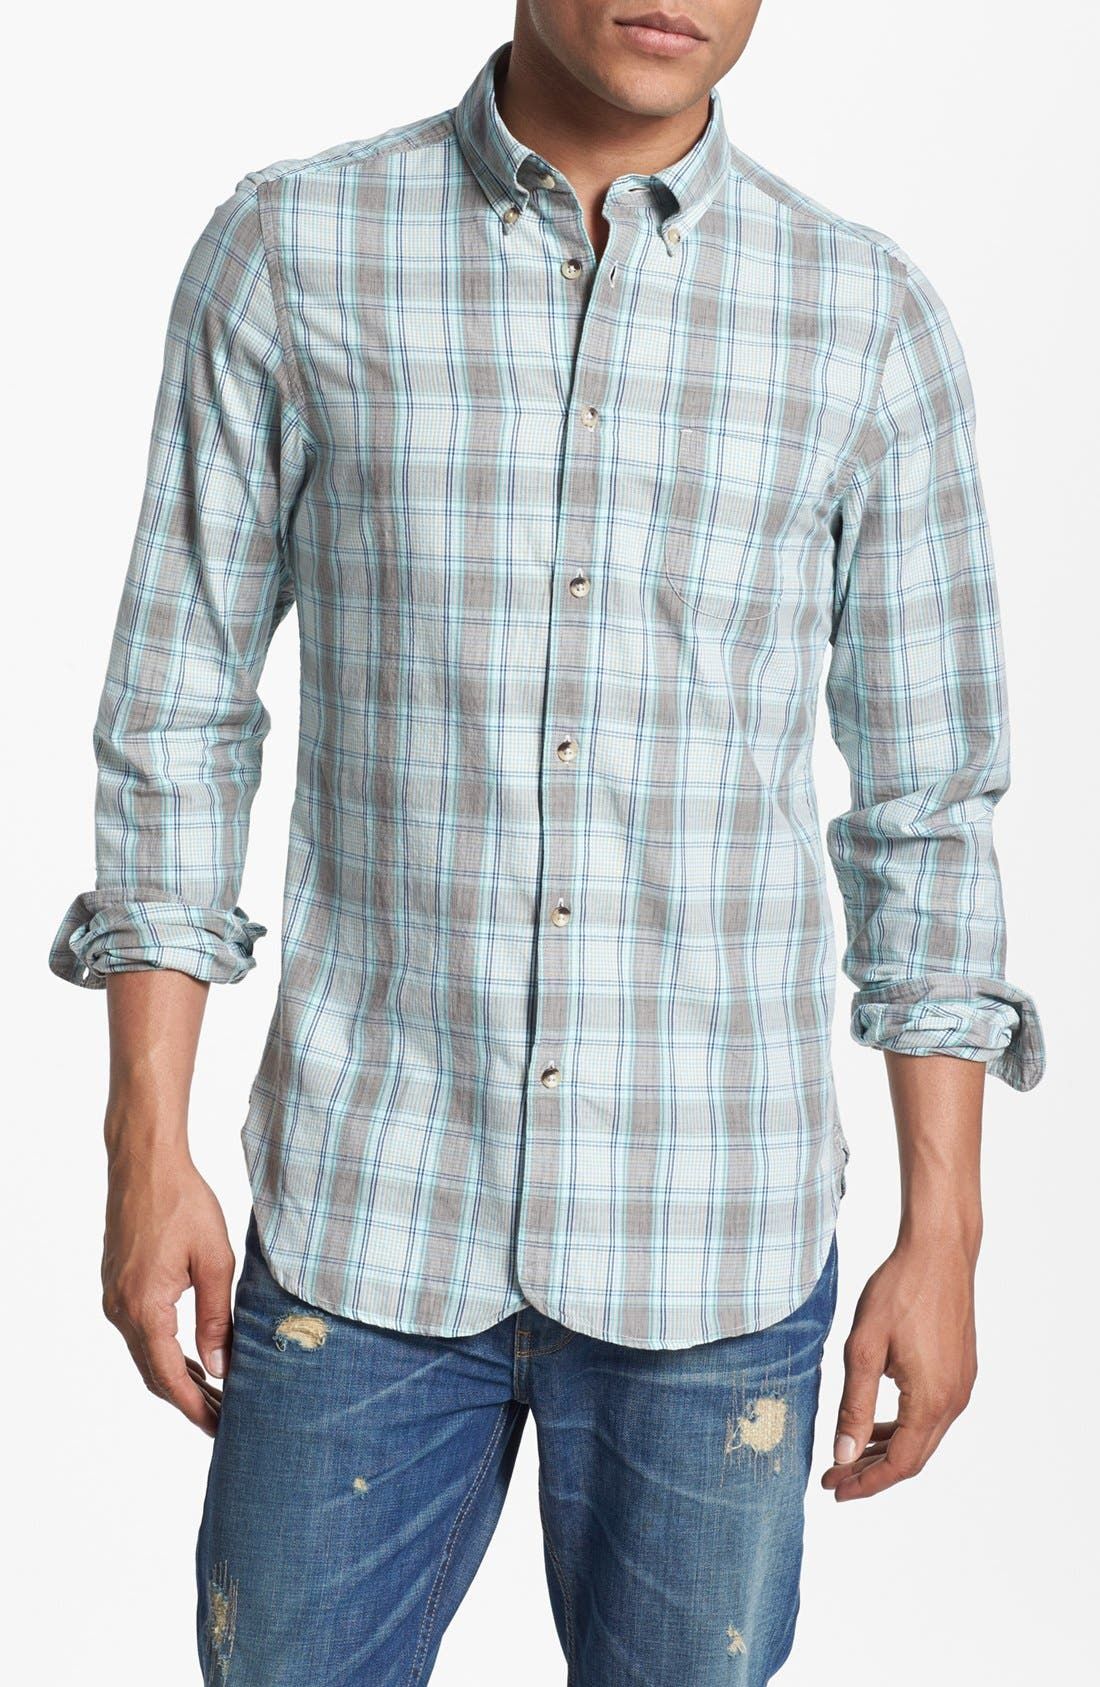 Alternate Image 1 Selected - Ben Sherman Plaid Woven Shirt